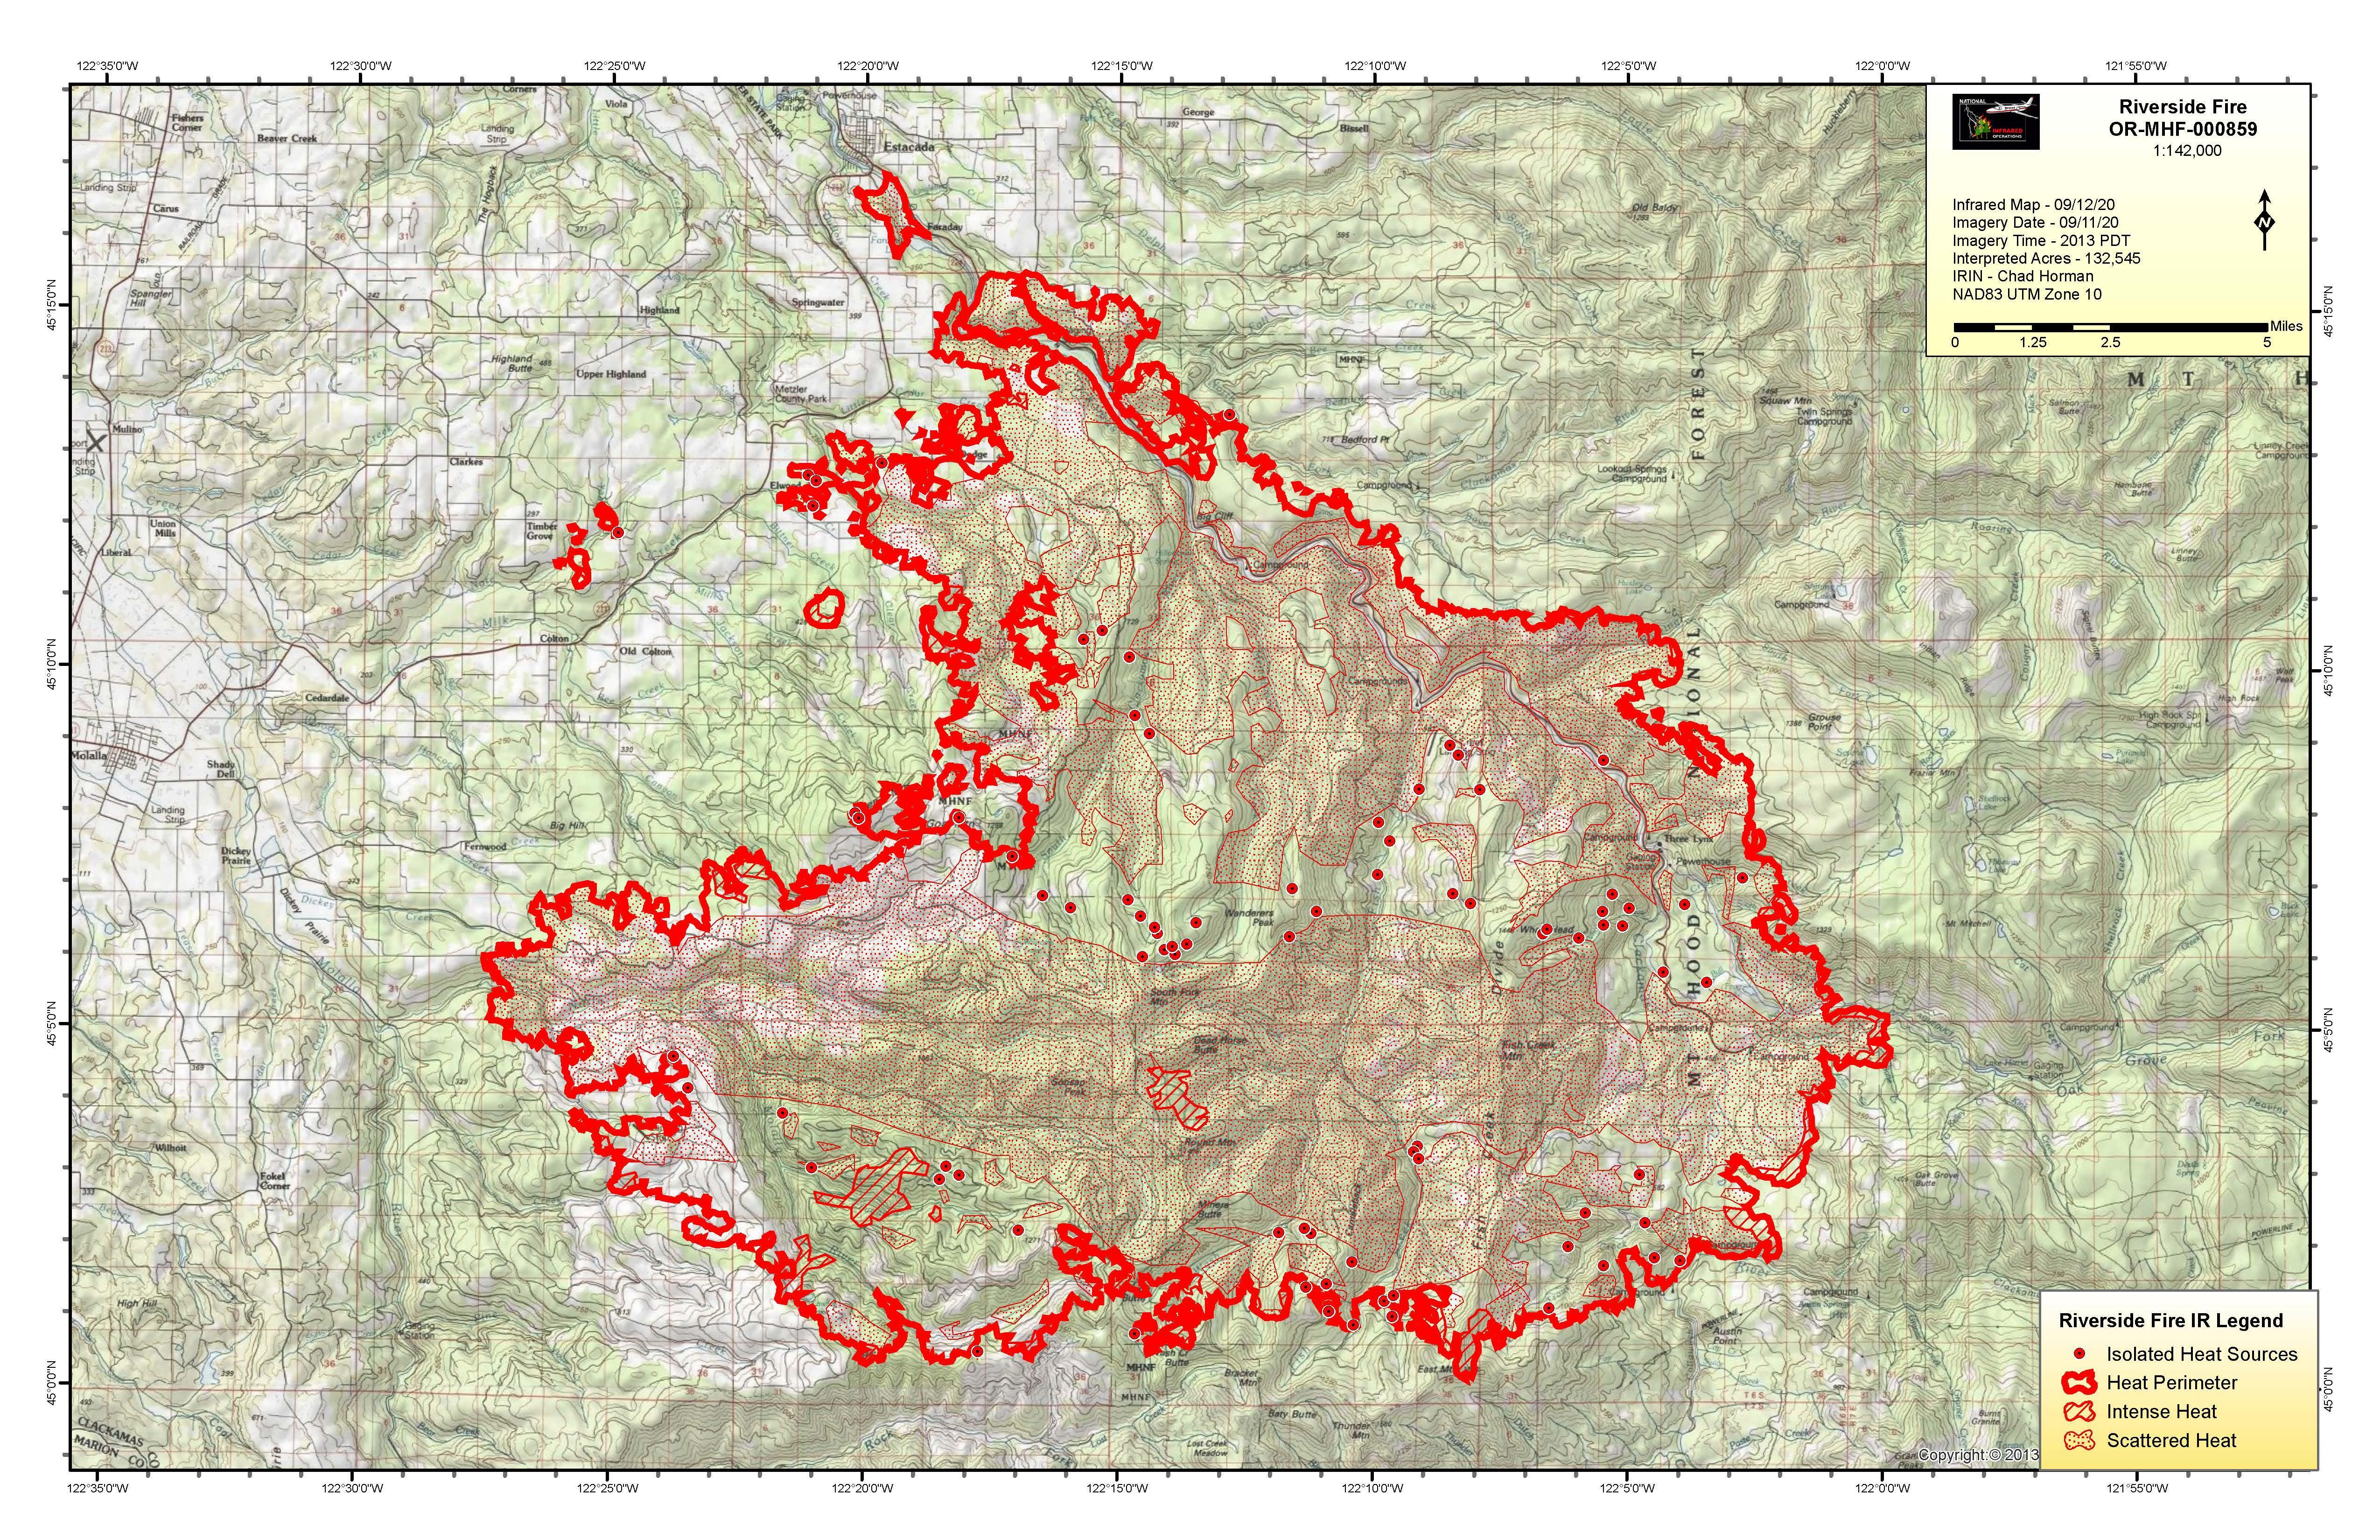 Infrared flight map showing fire at 130,052 acres on September 12, 2020.